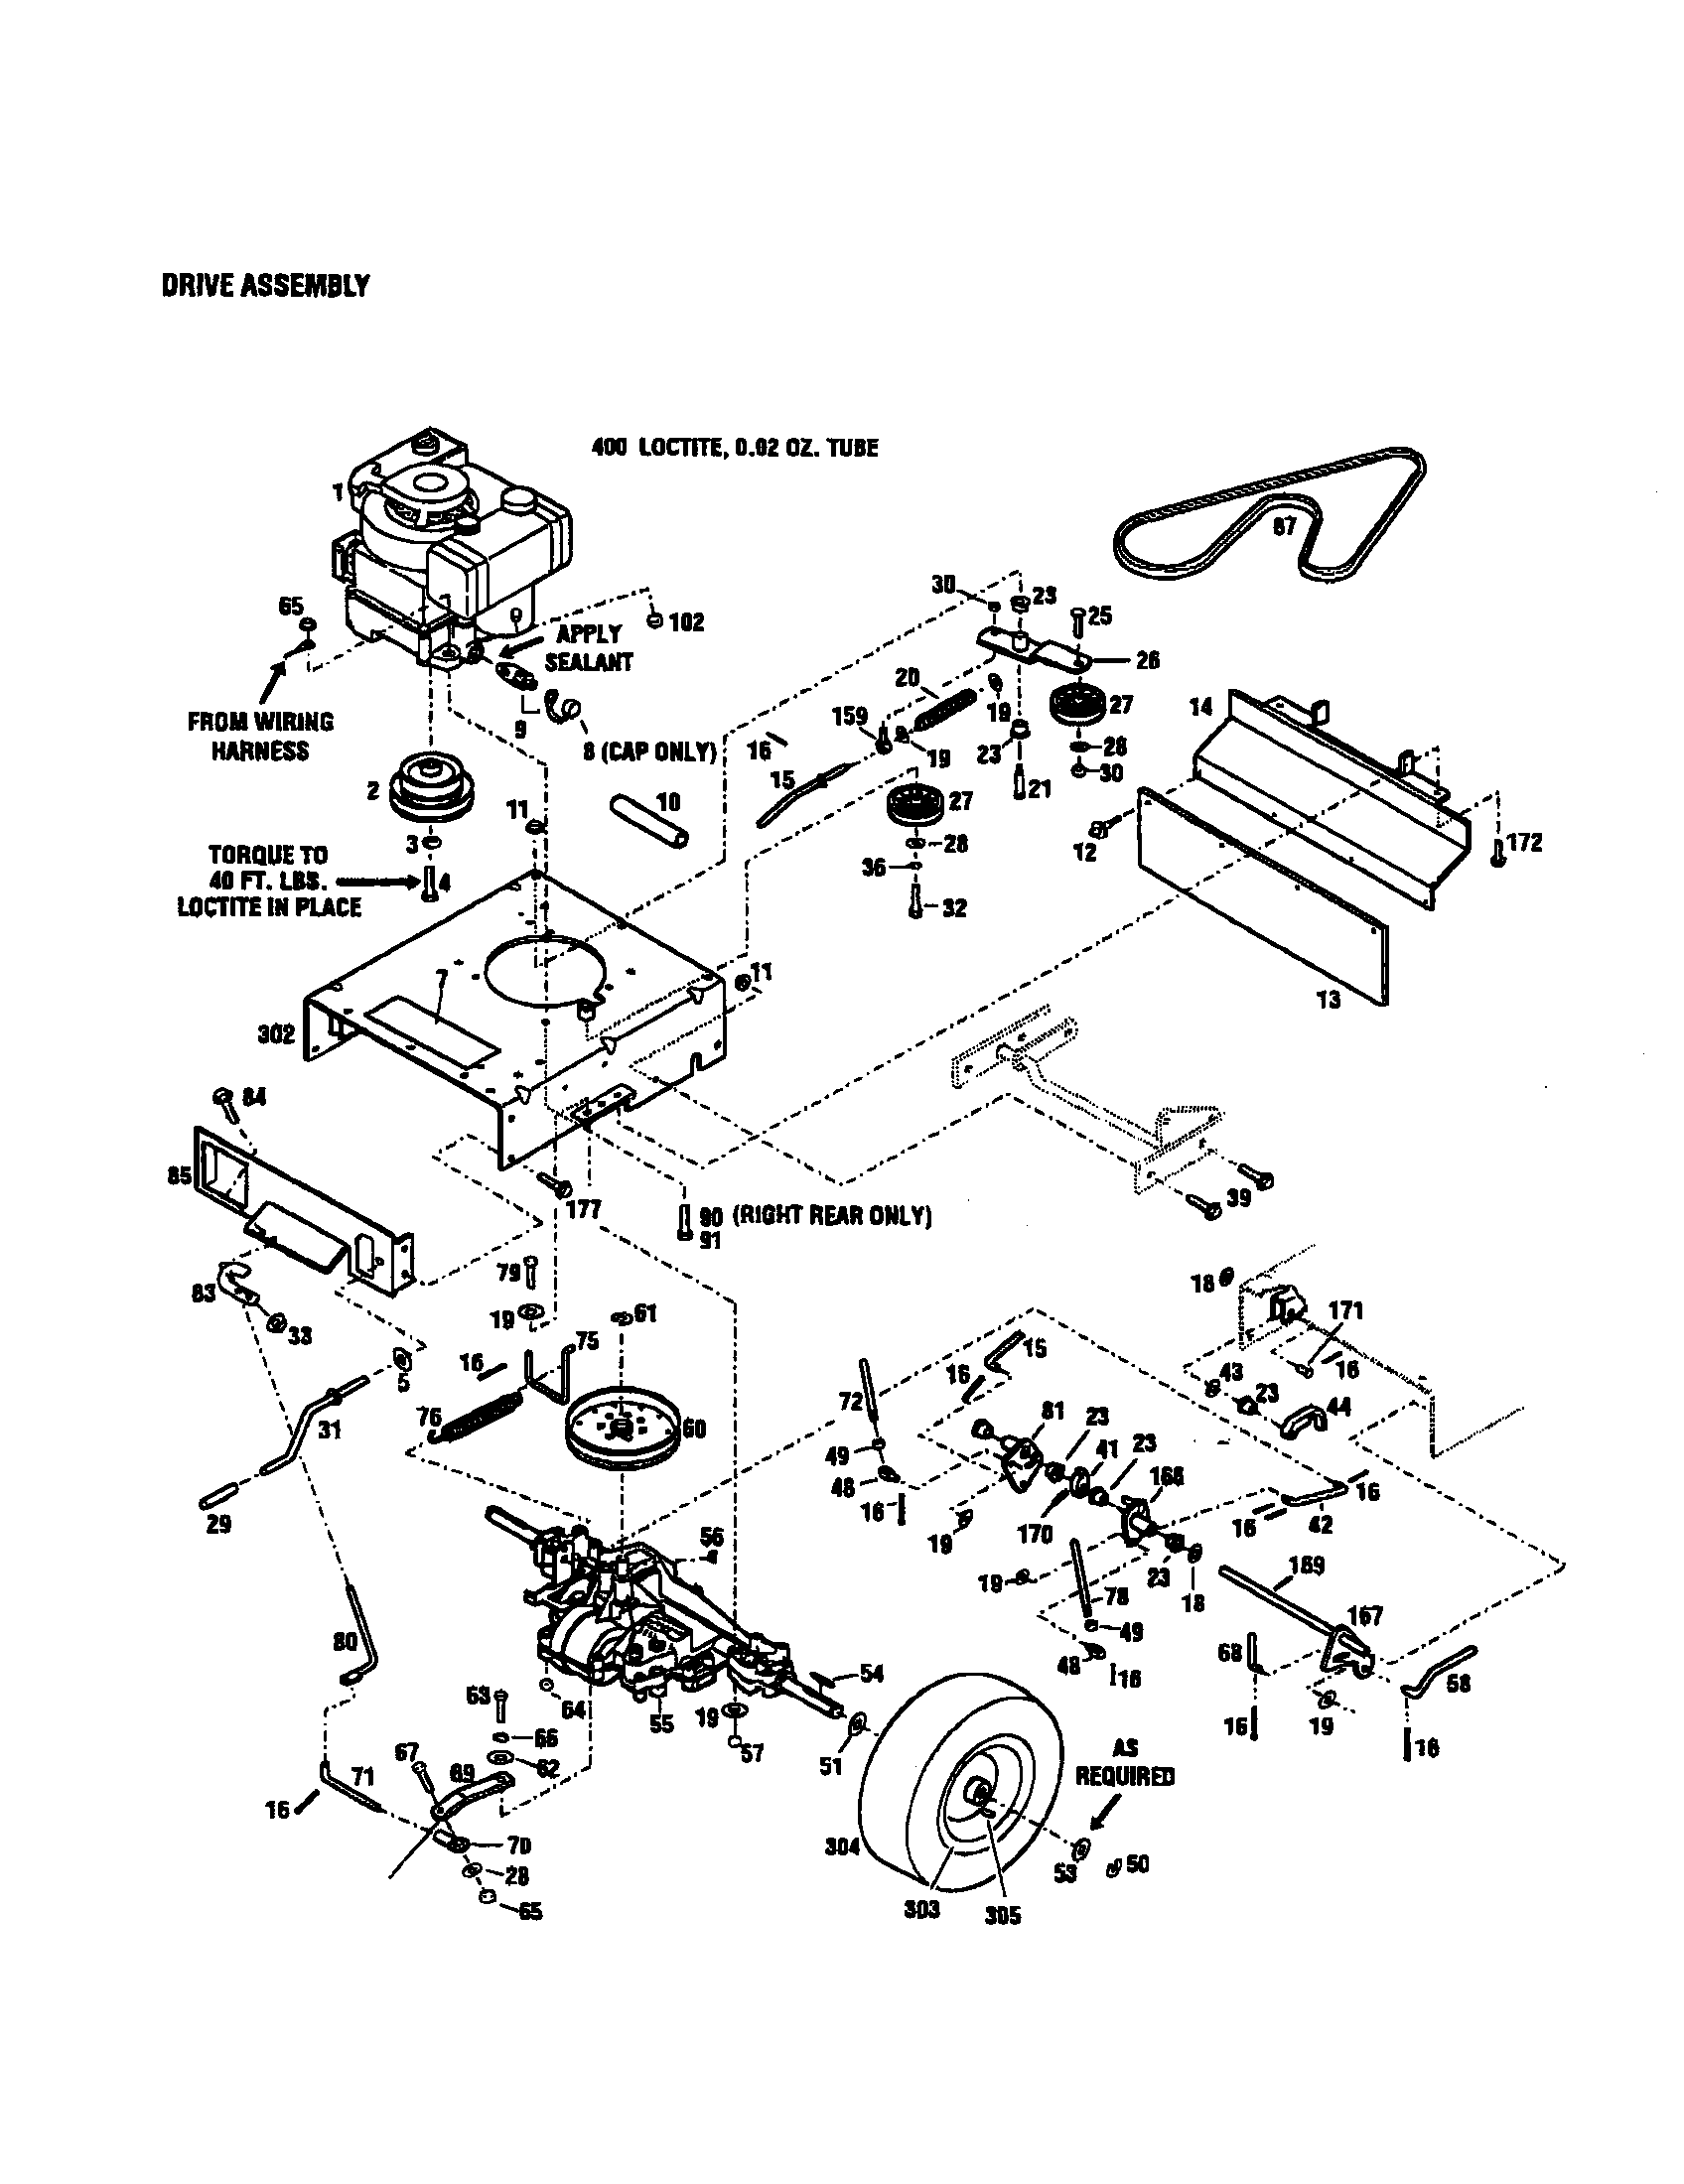 1998 mazda protege fuse box diagram